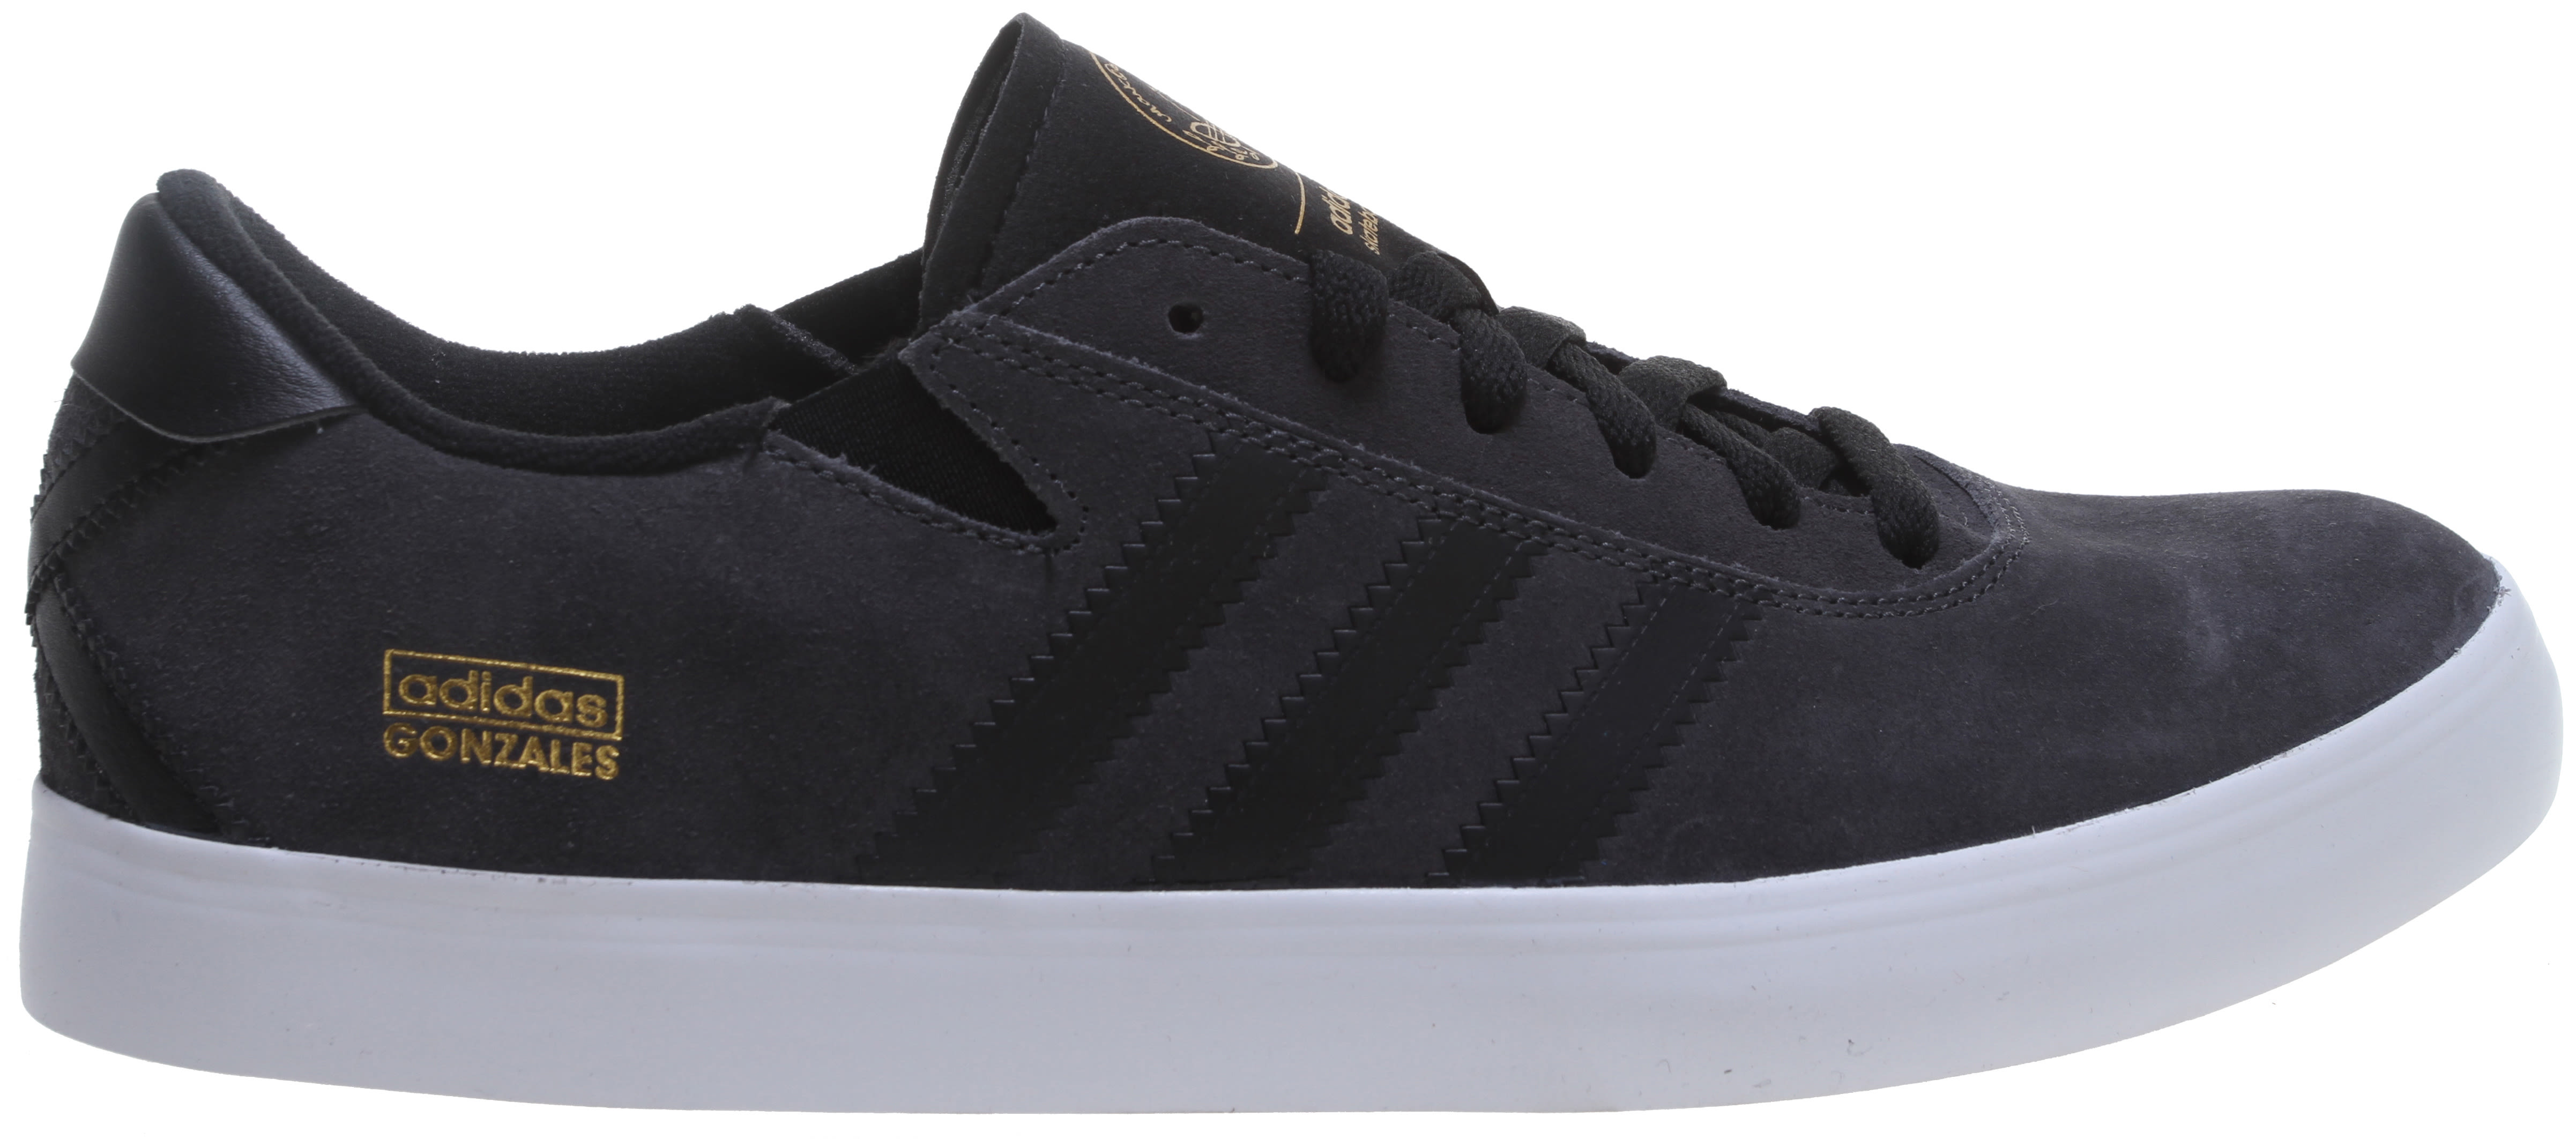 adidas Gonz Pro Shoes in stock at SPoT Skate Shop